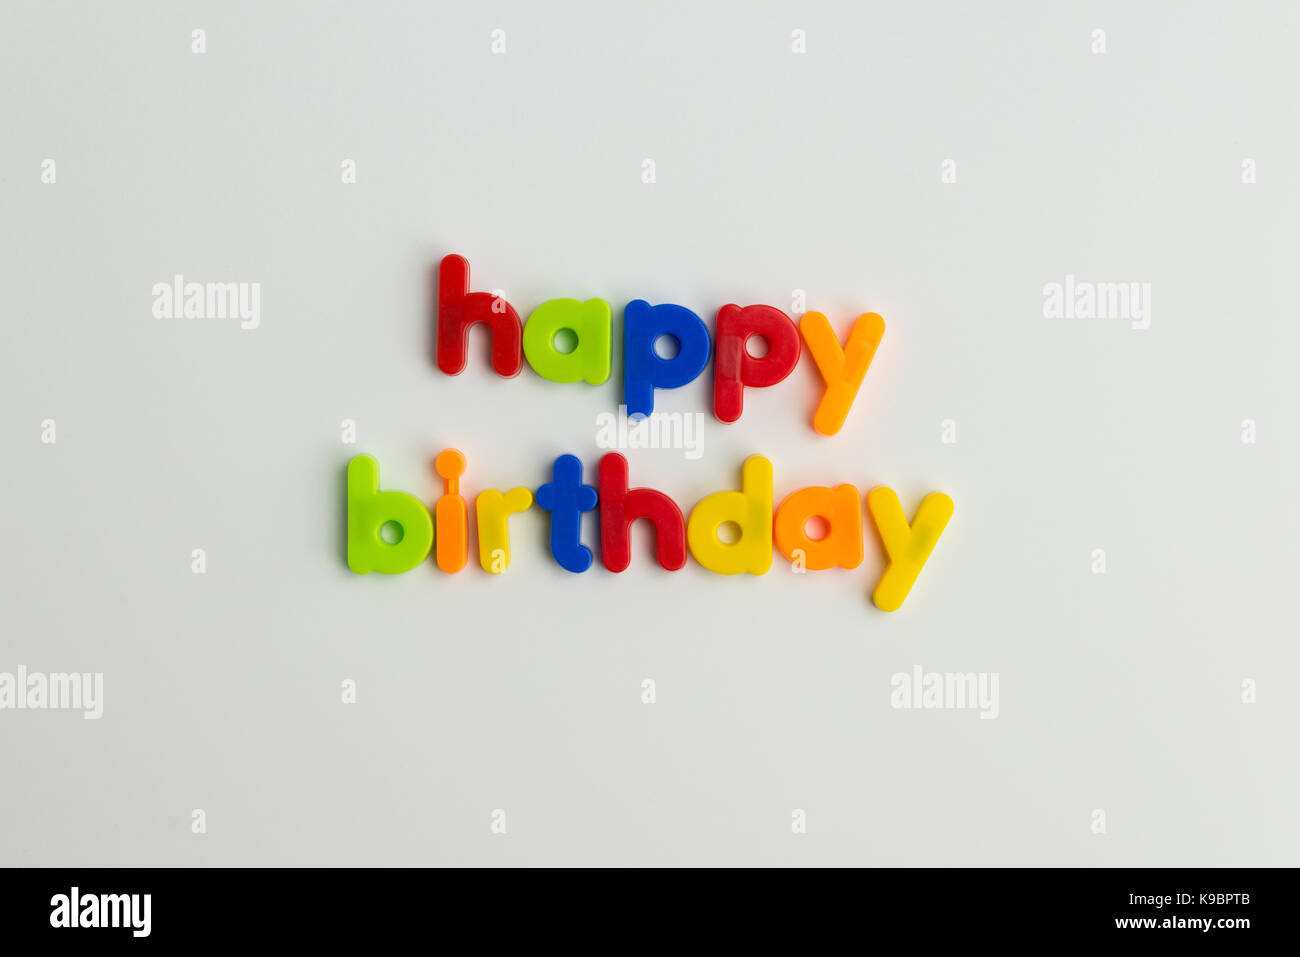 happy birthday words in colourful children's letters Stock Photo